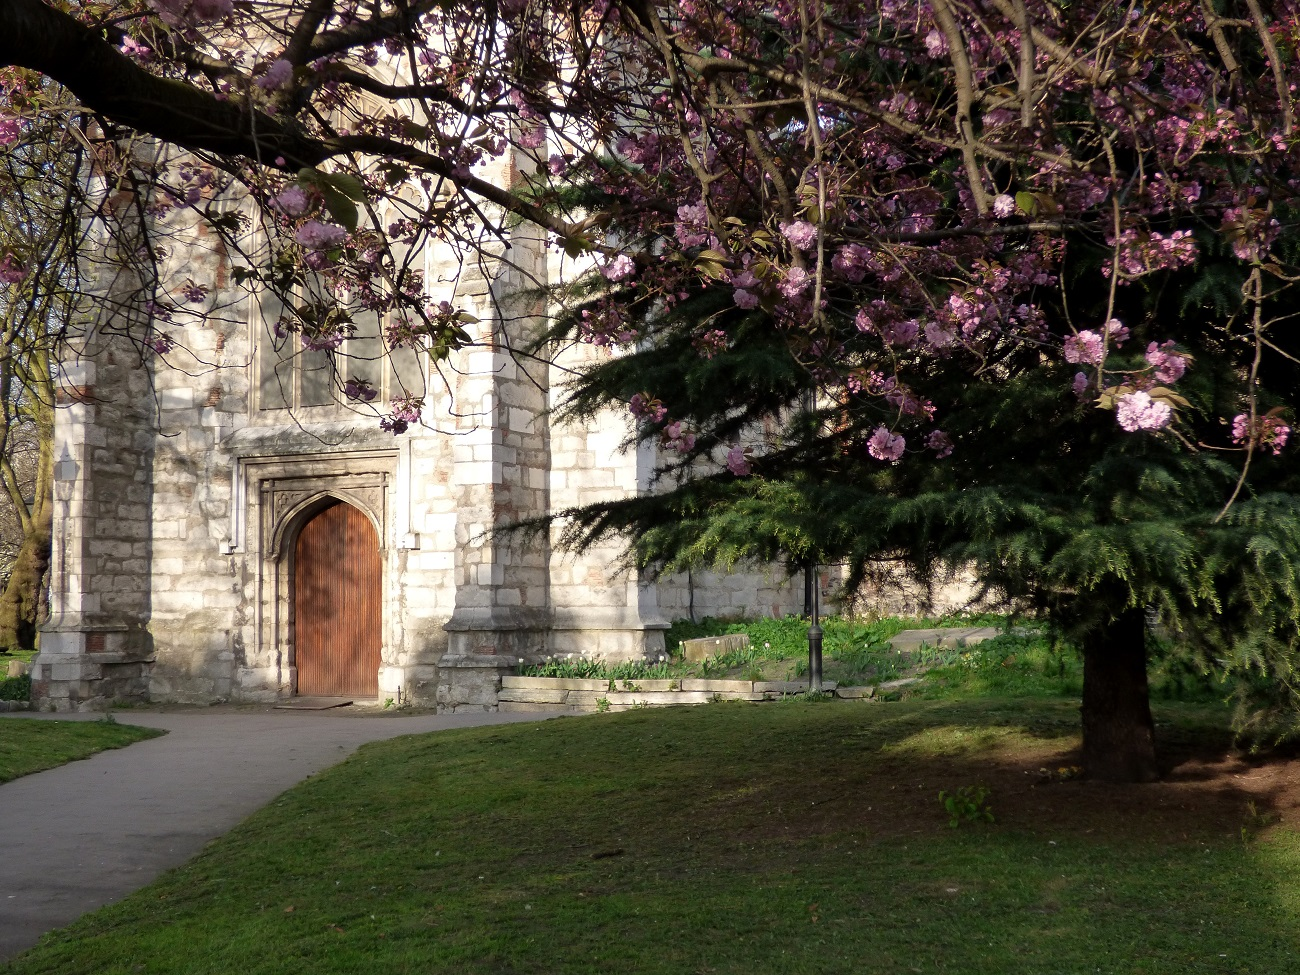 20170403_Newham_West-Ham-Parich-Church_Blossom-in-the-foreground